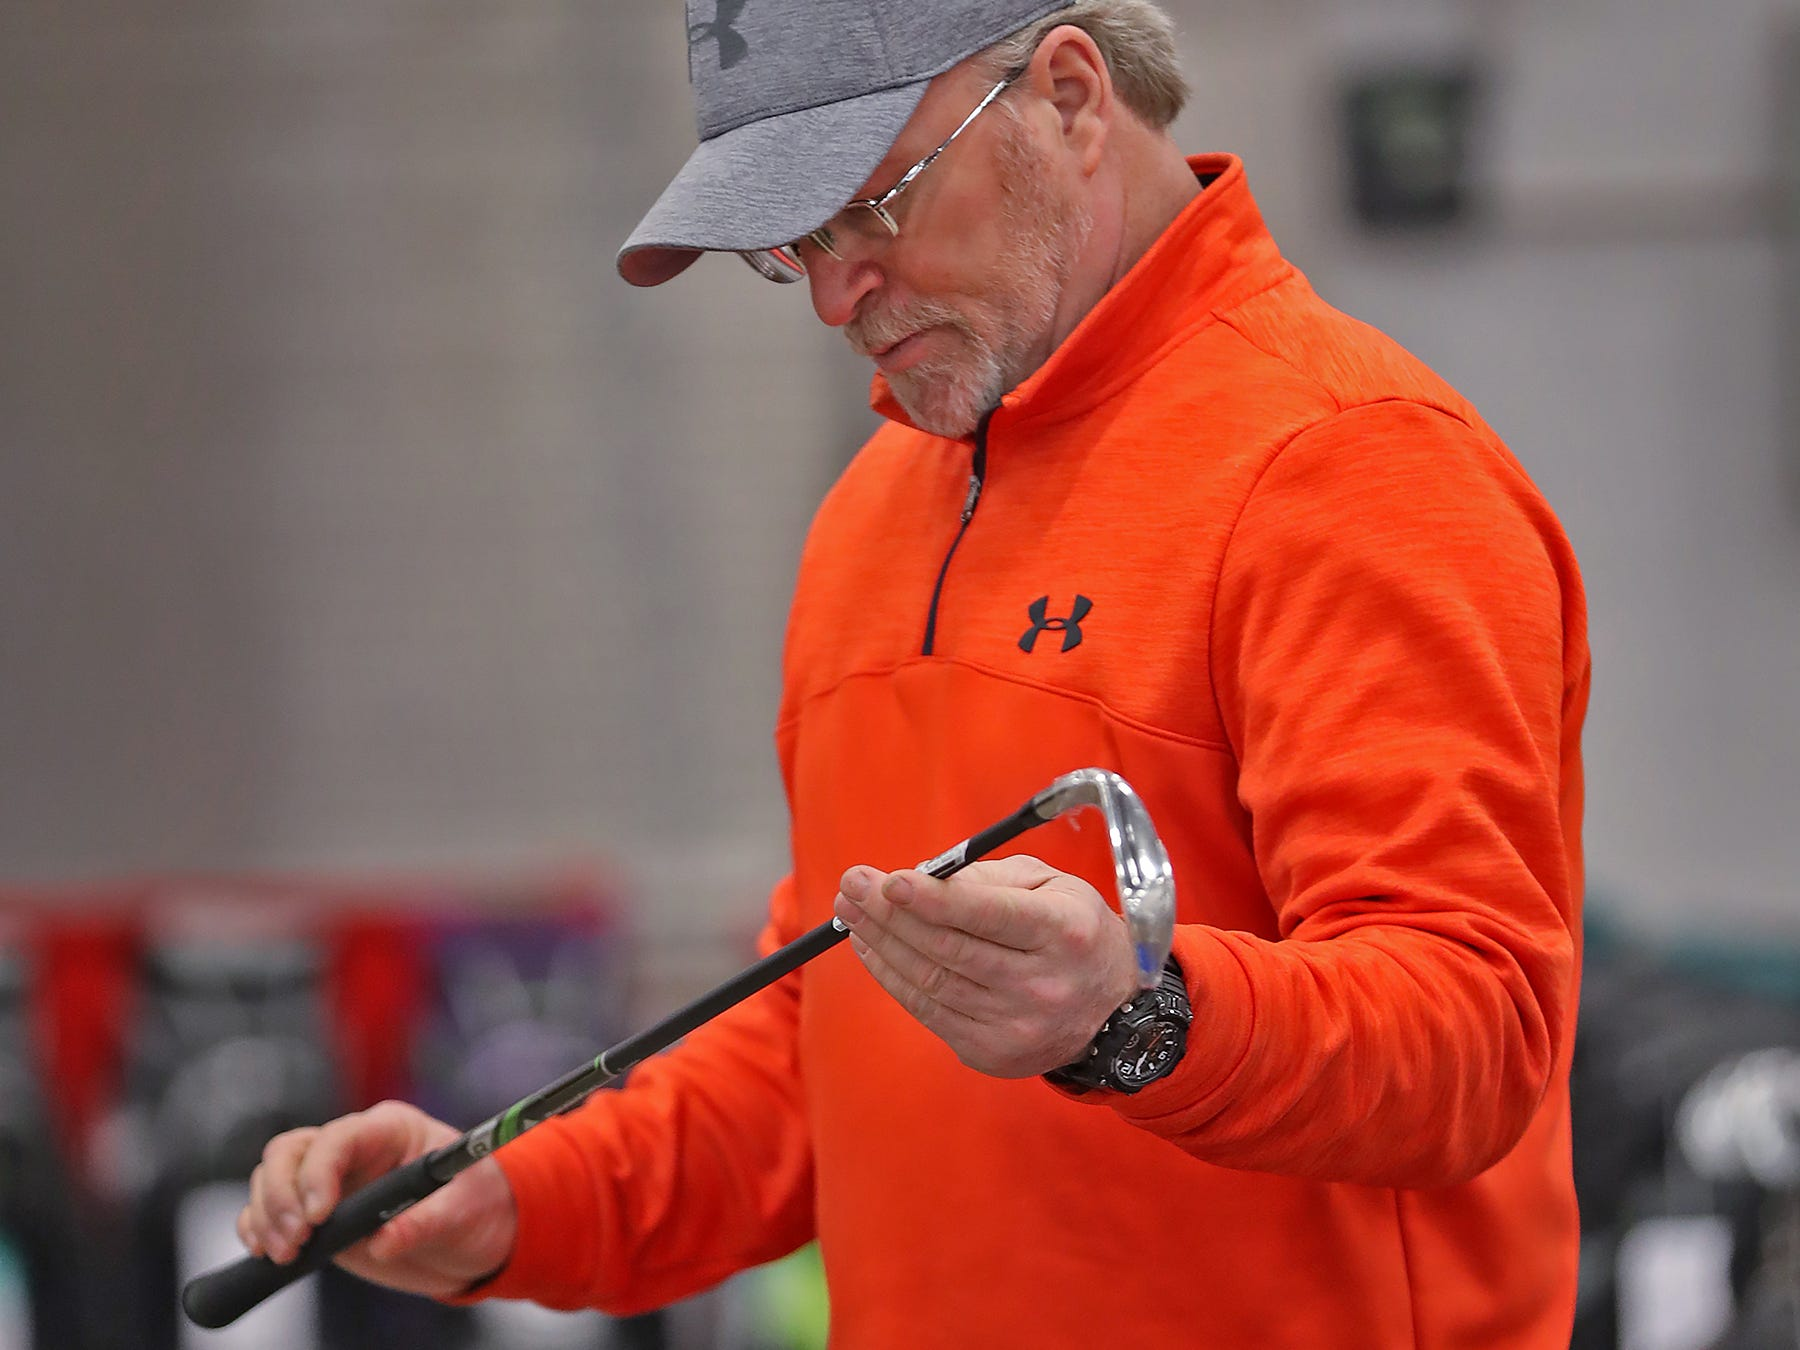 Bruce Stevens looks at clubs at the L&M Golf Shop booth during the Indy Golf Expo at the Indiana State Fairgrounds, Sunday, Jan. 20, 2019.